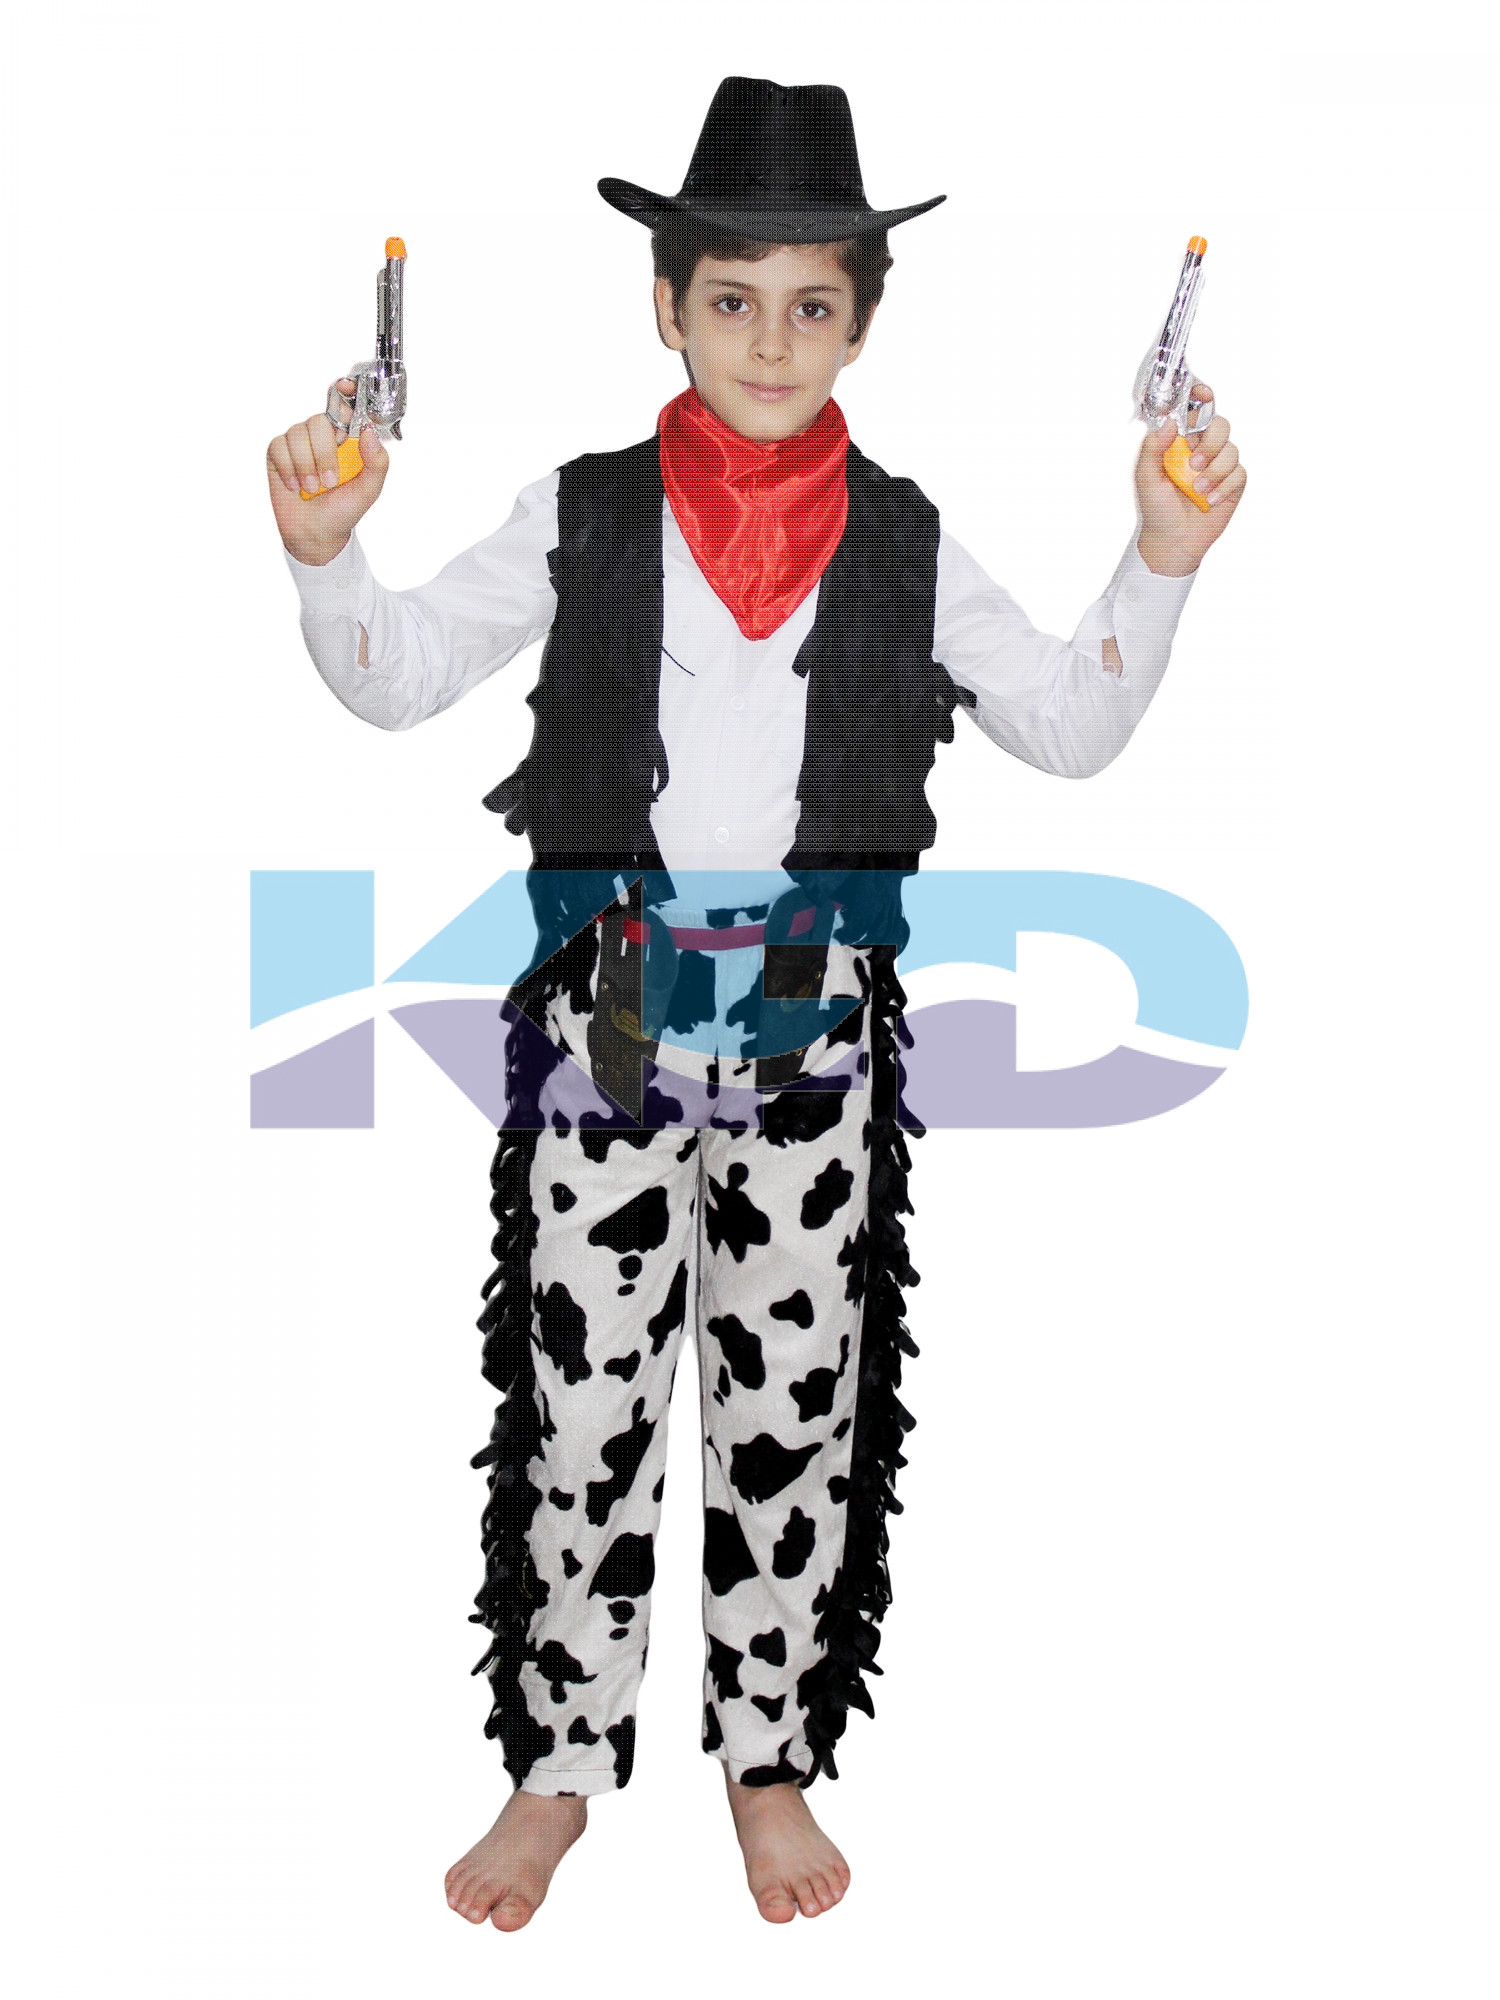 Cow Boy Printed Costume,Horse Riding Costume for Annual function/Theme Party/Competition/Stage Shows/Birthday Party Dress